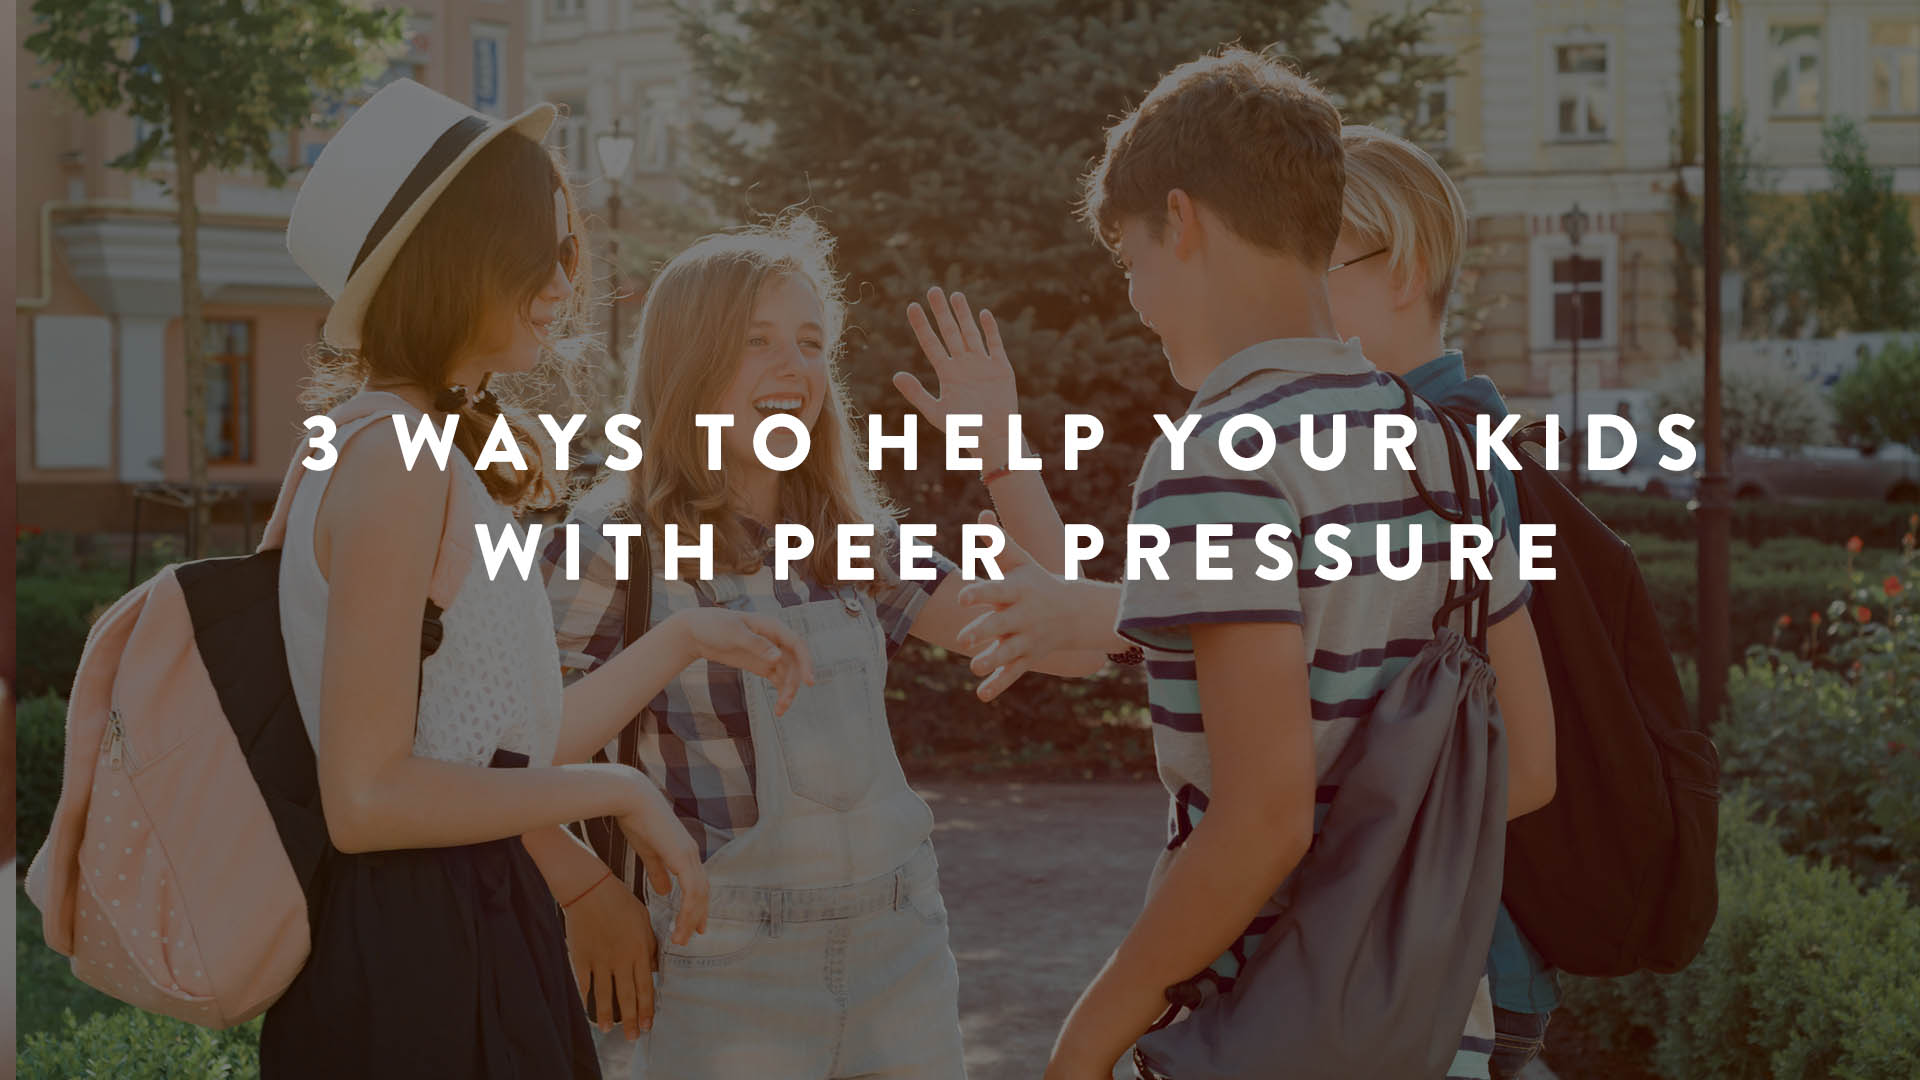 3 Ways to Help Your Kids with Peer Pressure